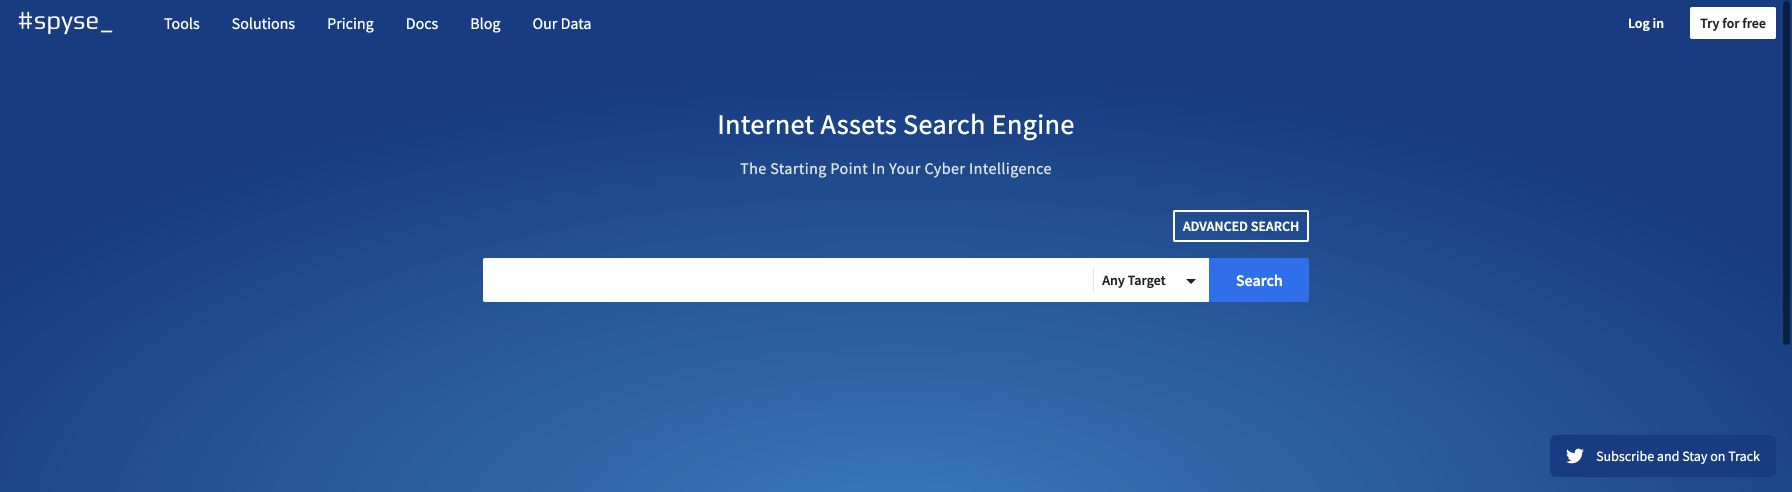 /how-to-fastline-internet-asset-enumeration-with-cyber-search-engines-h74231o8 feature image